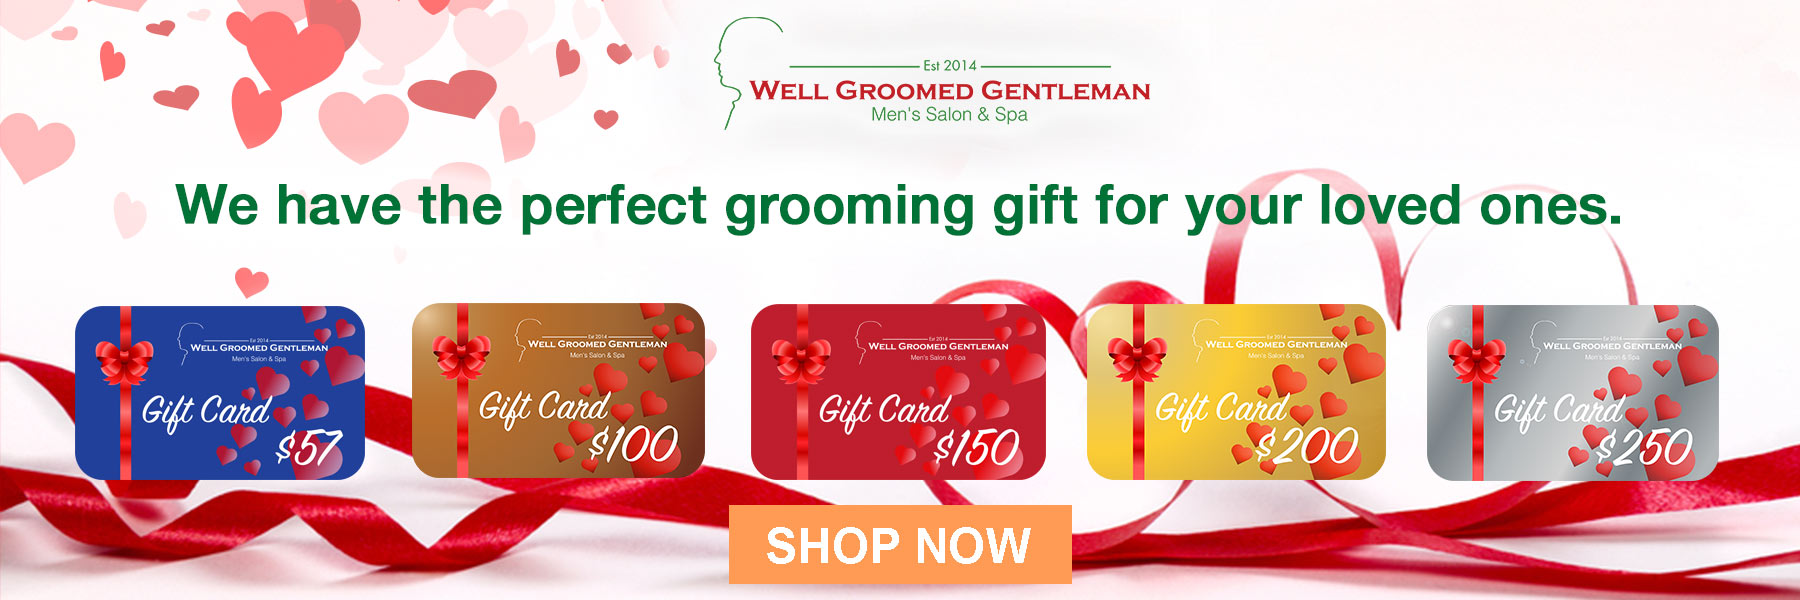 The perfect grooming gift for your loved ones.